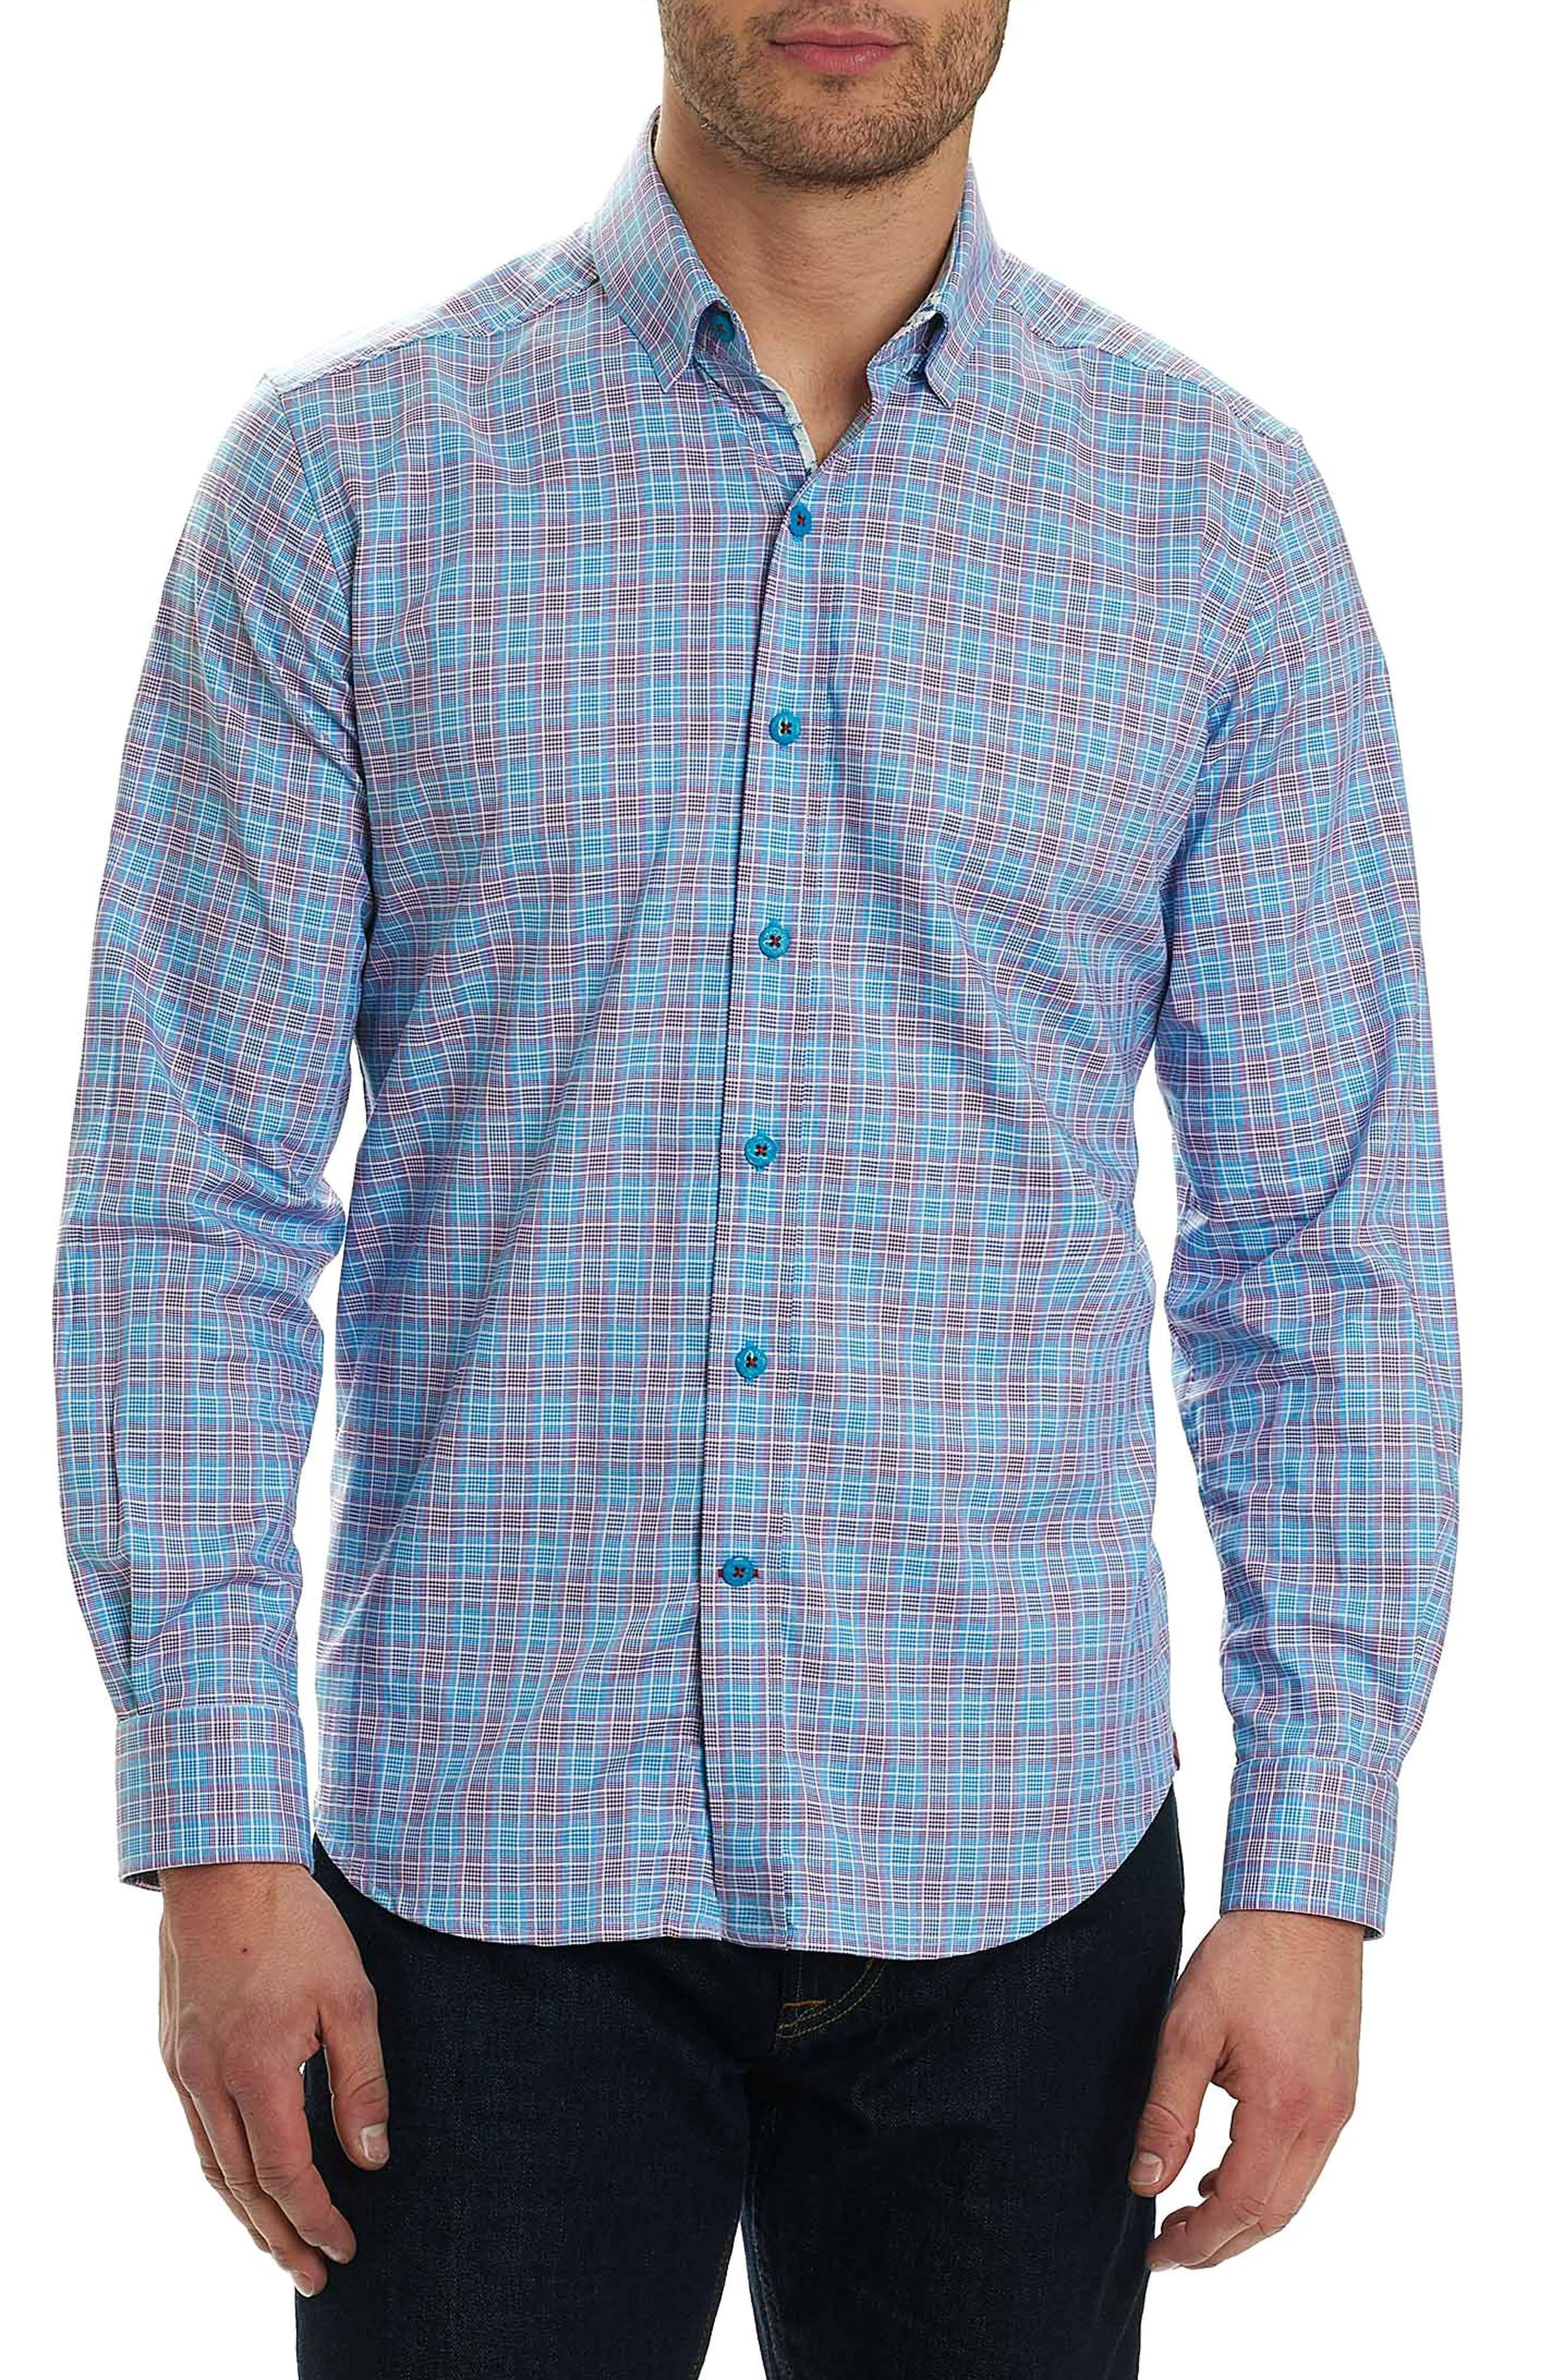 Alternate Image 1 Selected - Robert Graham Ryan Regular Fit Sport Shirt